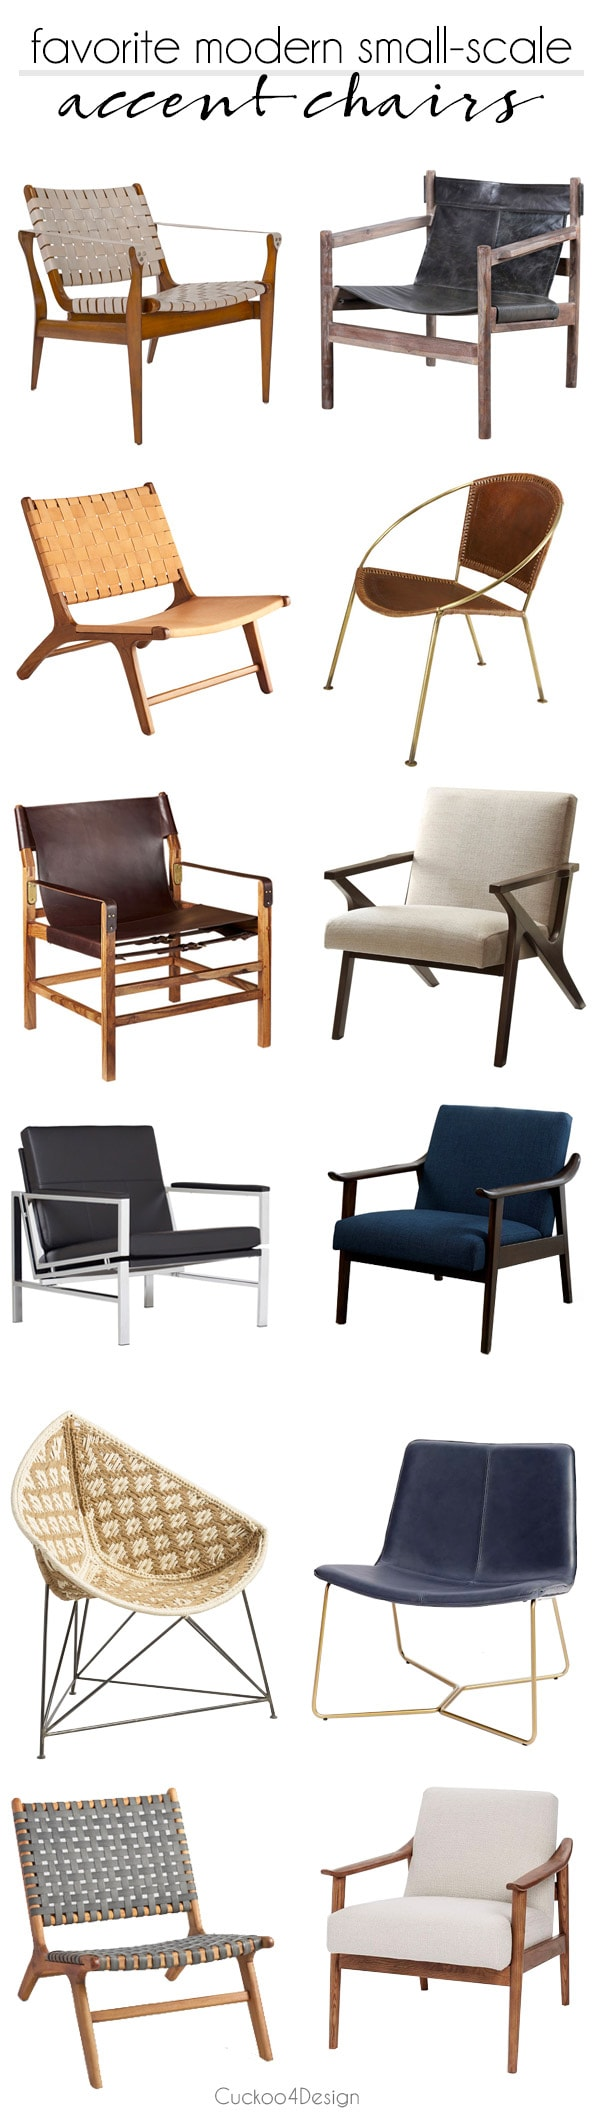 A Selection Of My Favorite Low Profile Modern Small Scale Accent Chairs |  Leather Slingback